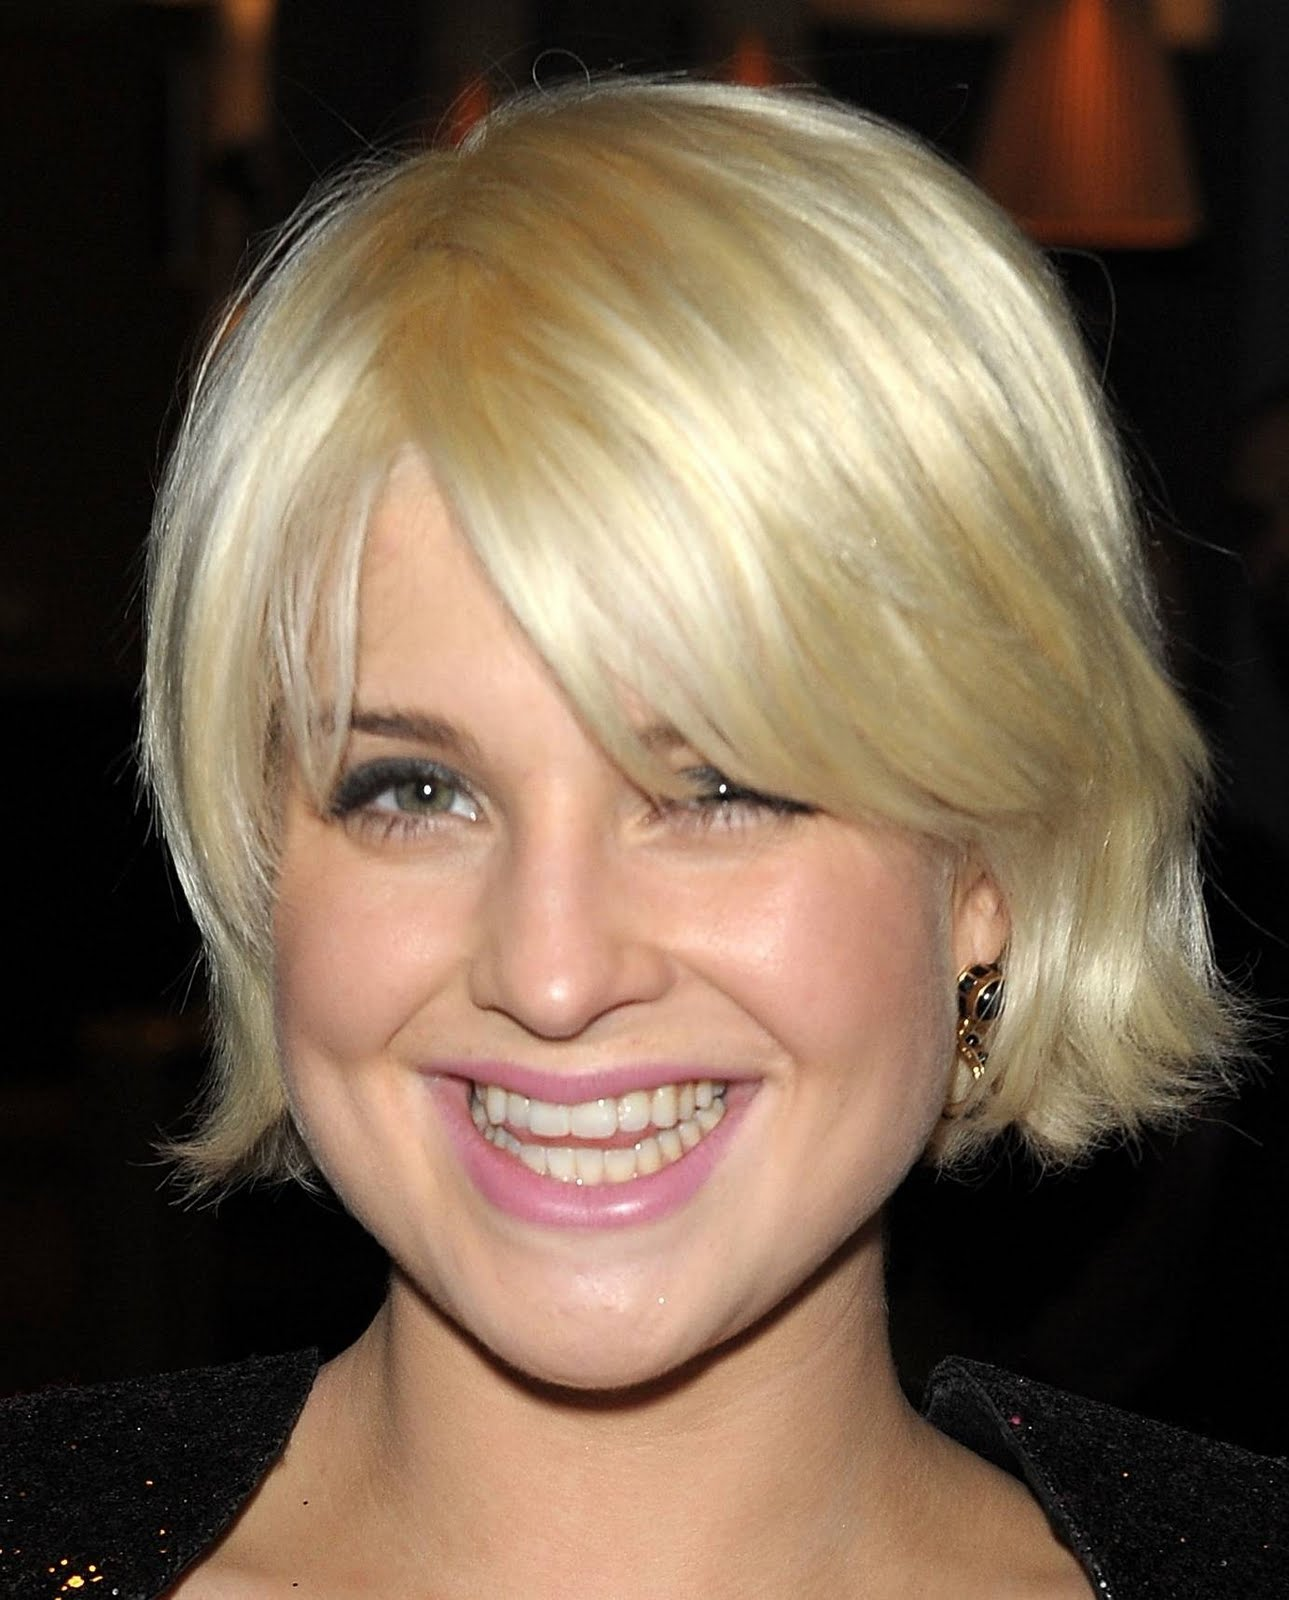 Groovy Short Blonde Straight Bob Hairstyles For Prom 2012 Romance Hairstyles For Women Draintrainus